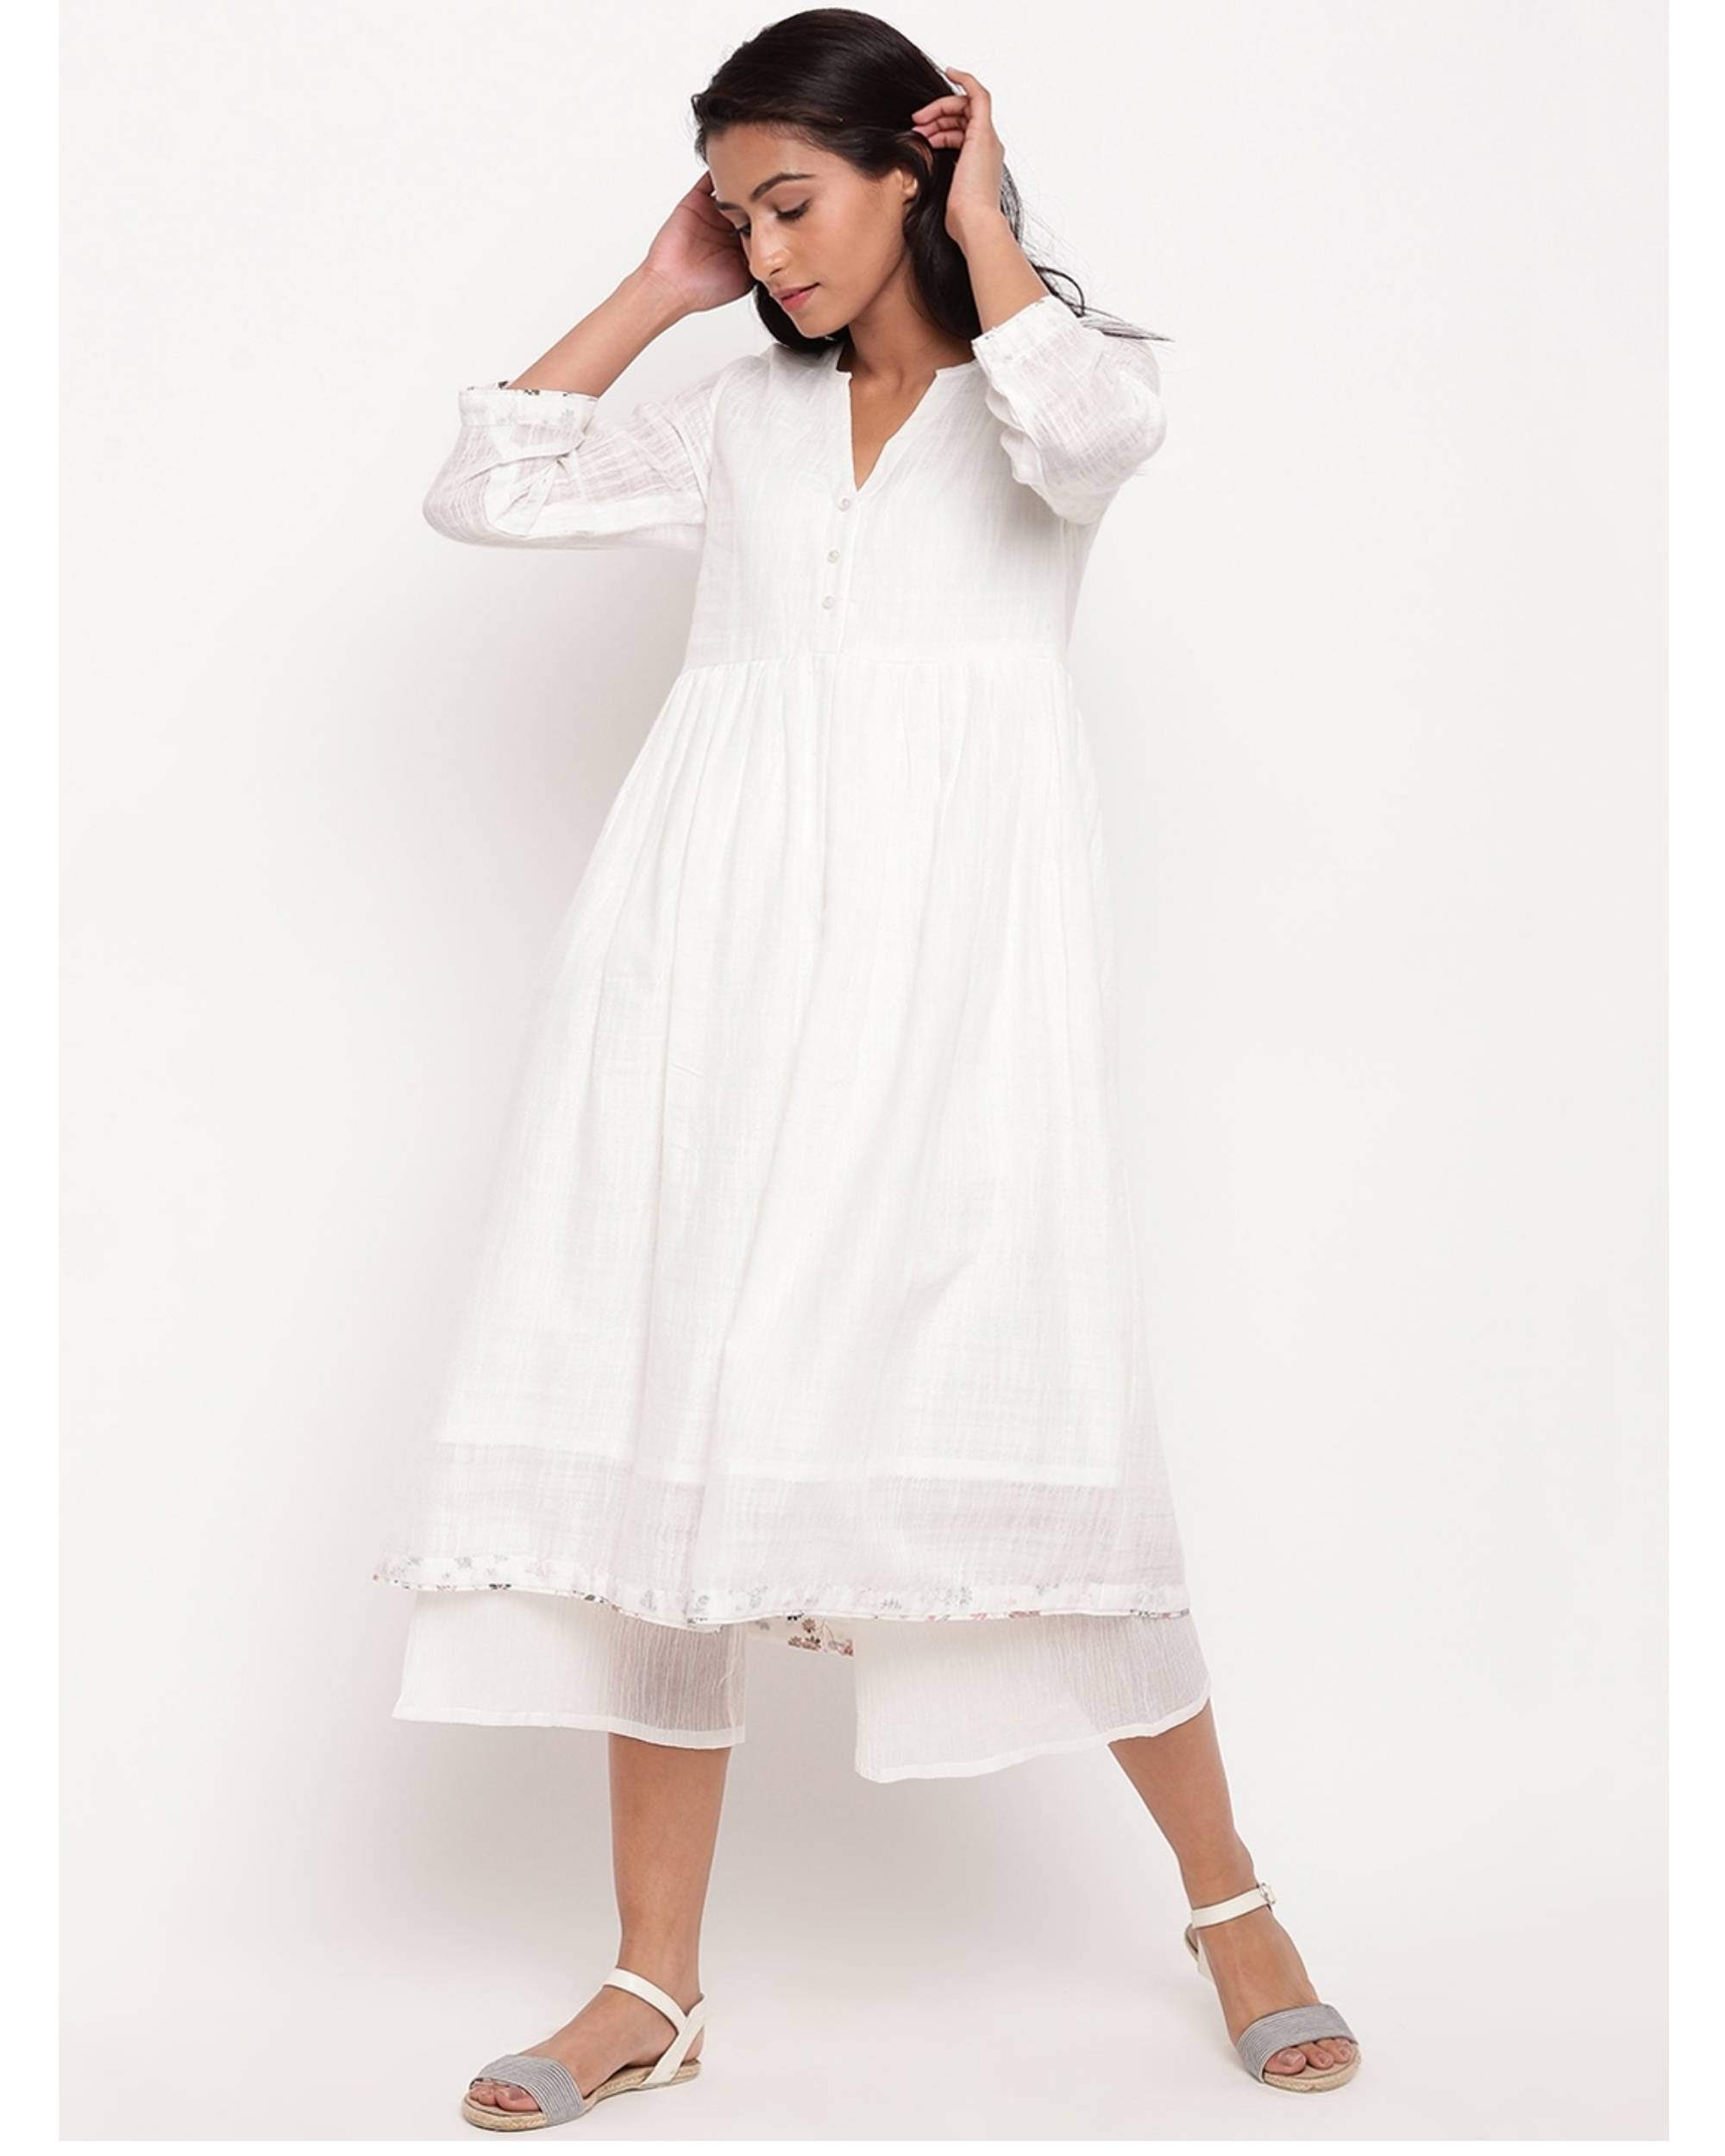 White floral buttoned kurta